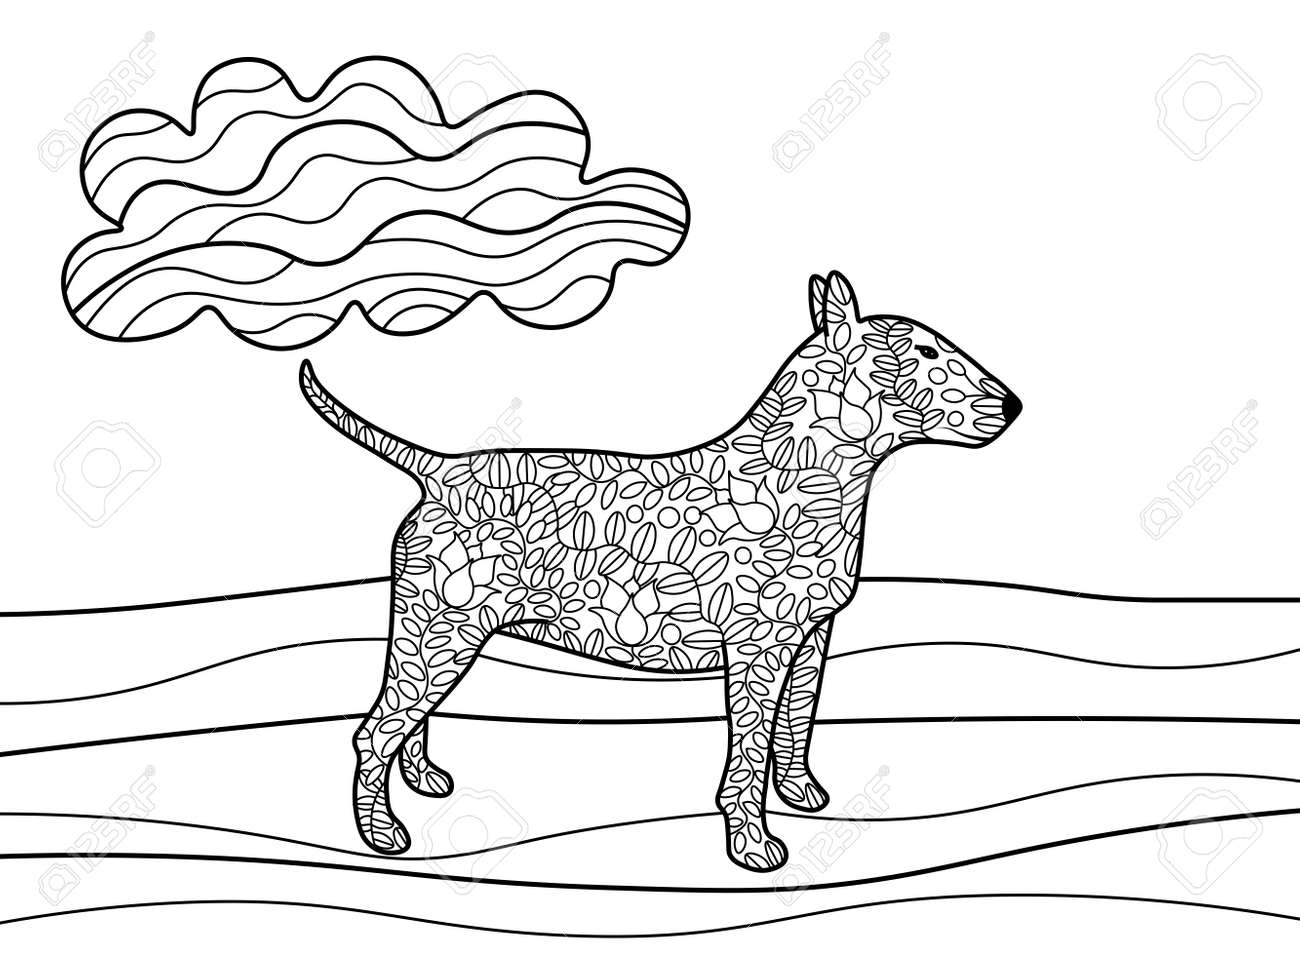 Bullterrier Dog Coloring Book For Adults Vector Illustration ...